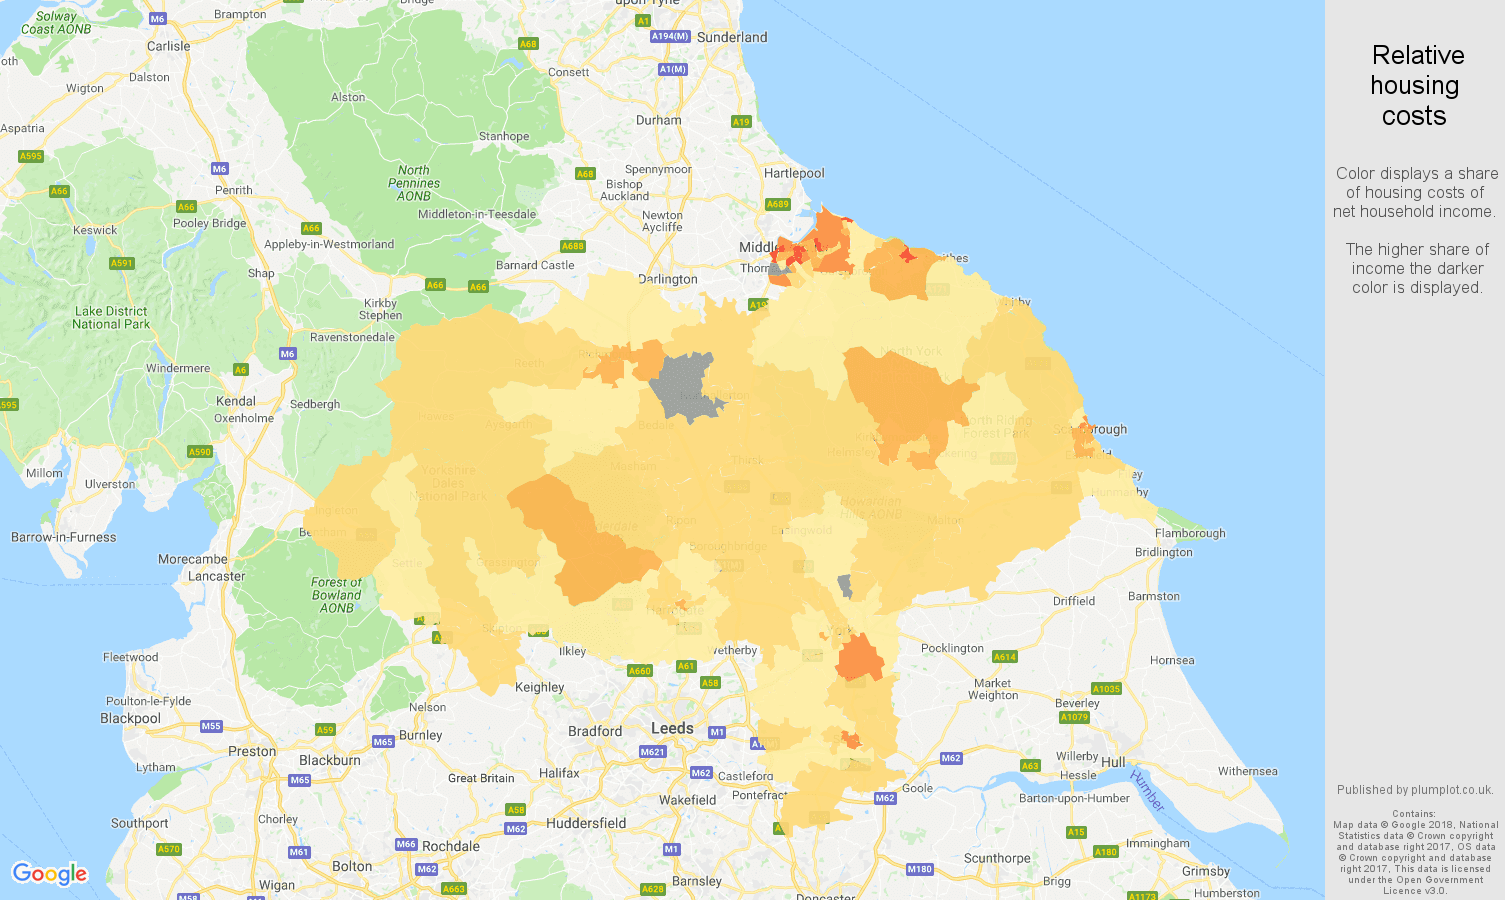 North Yorkshire relative housing costs map